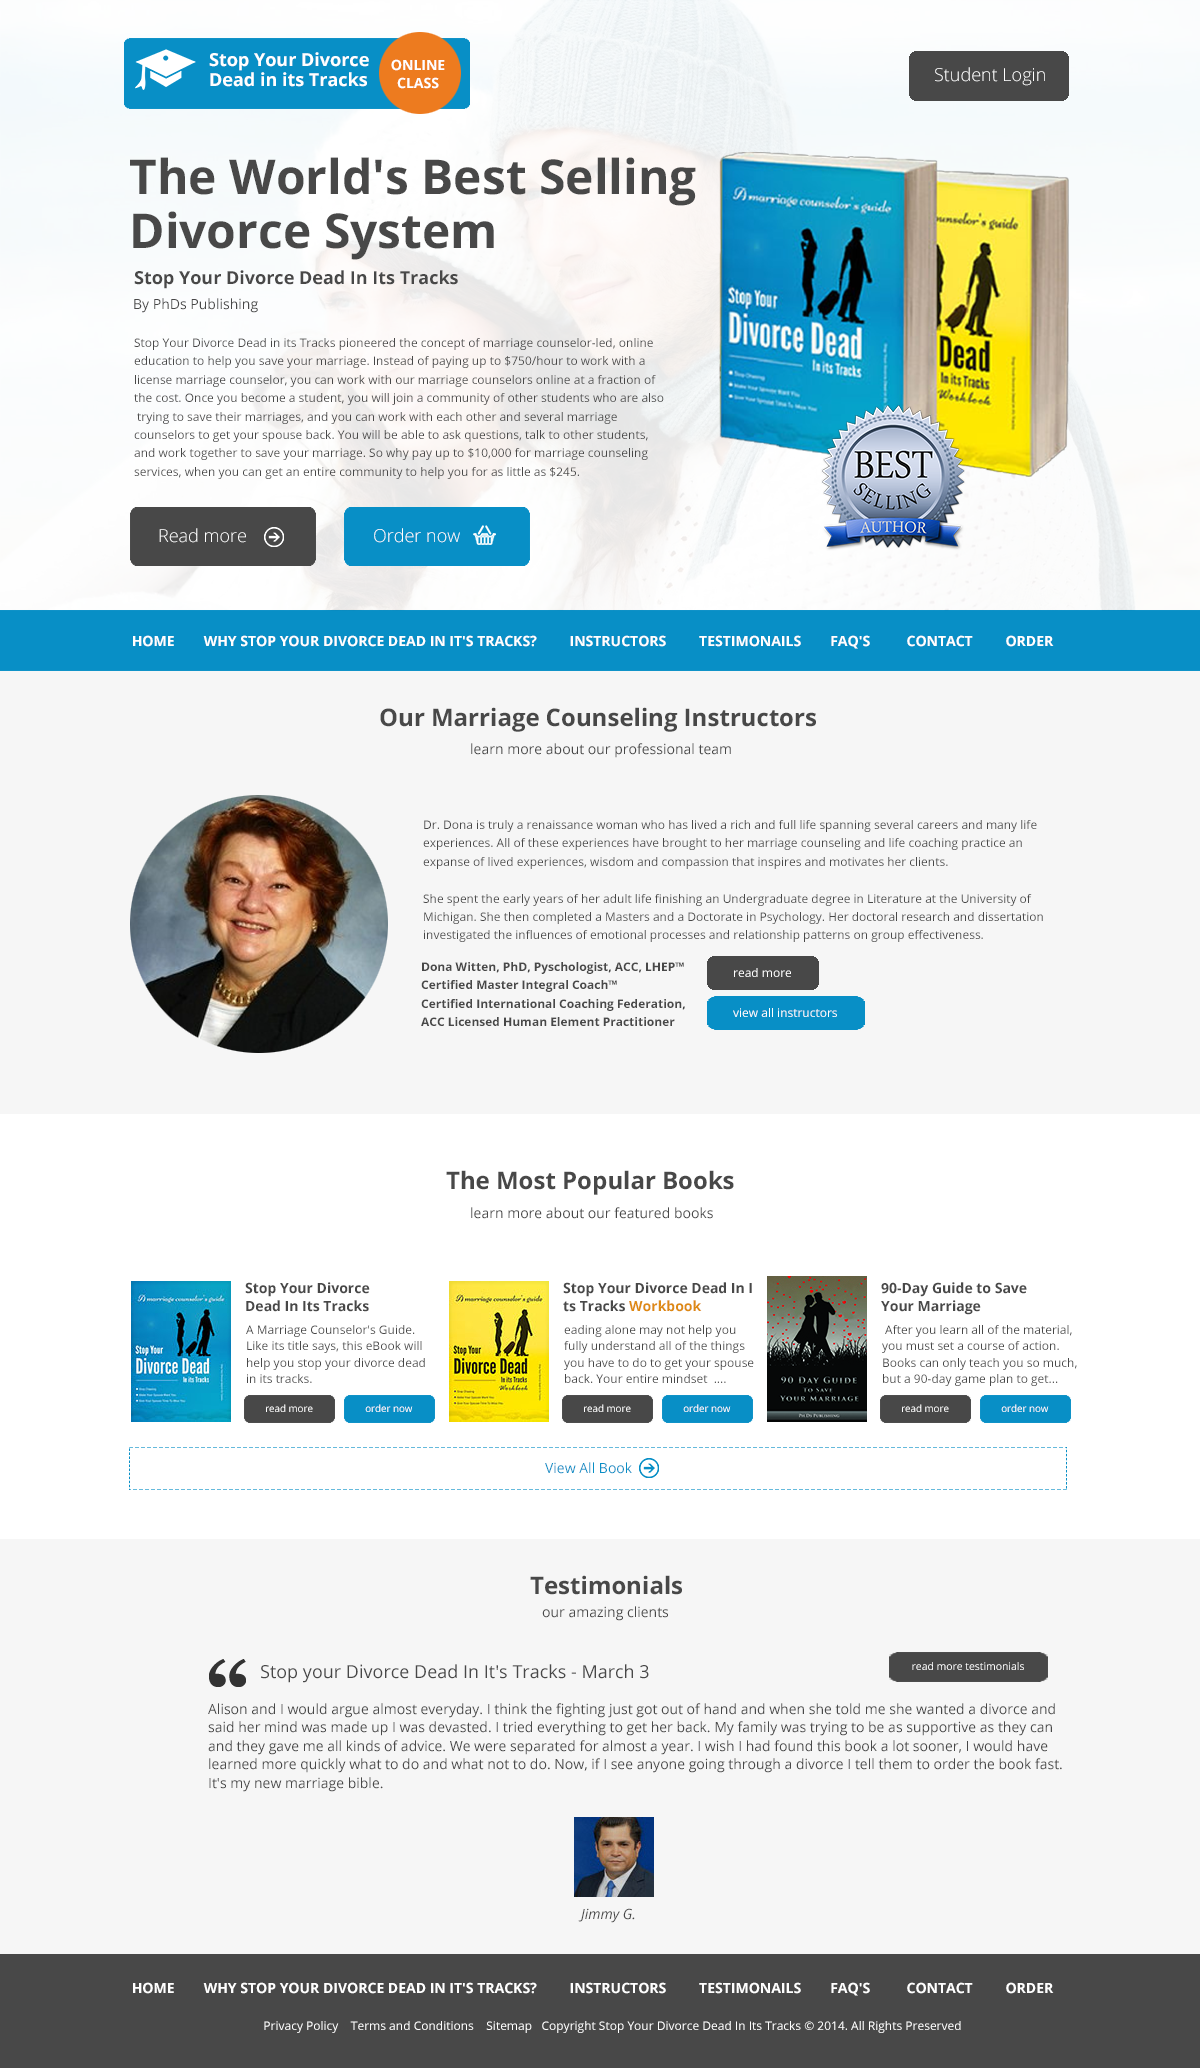 Web Design Psd To Html Contact Me Designpsd Abv Bg Web Design Web Design Projects Most Popular Books